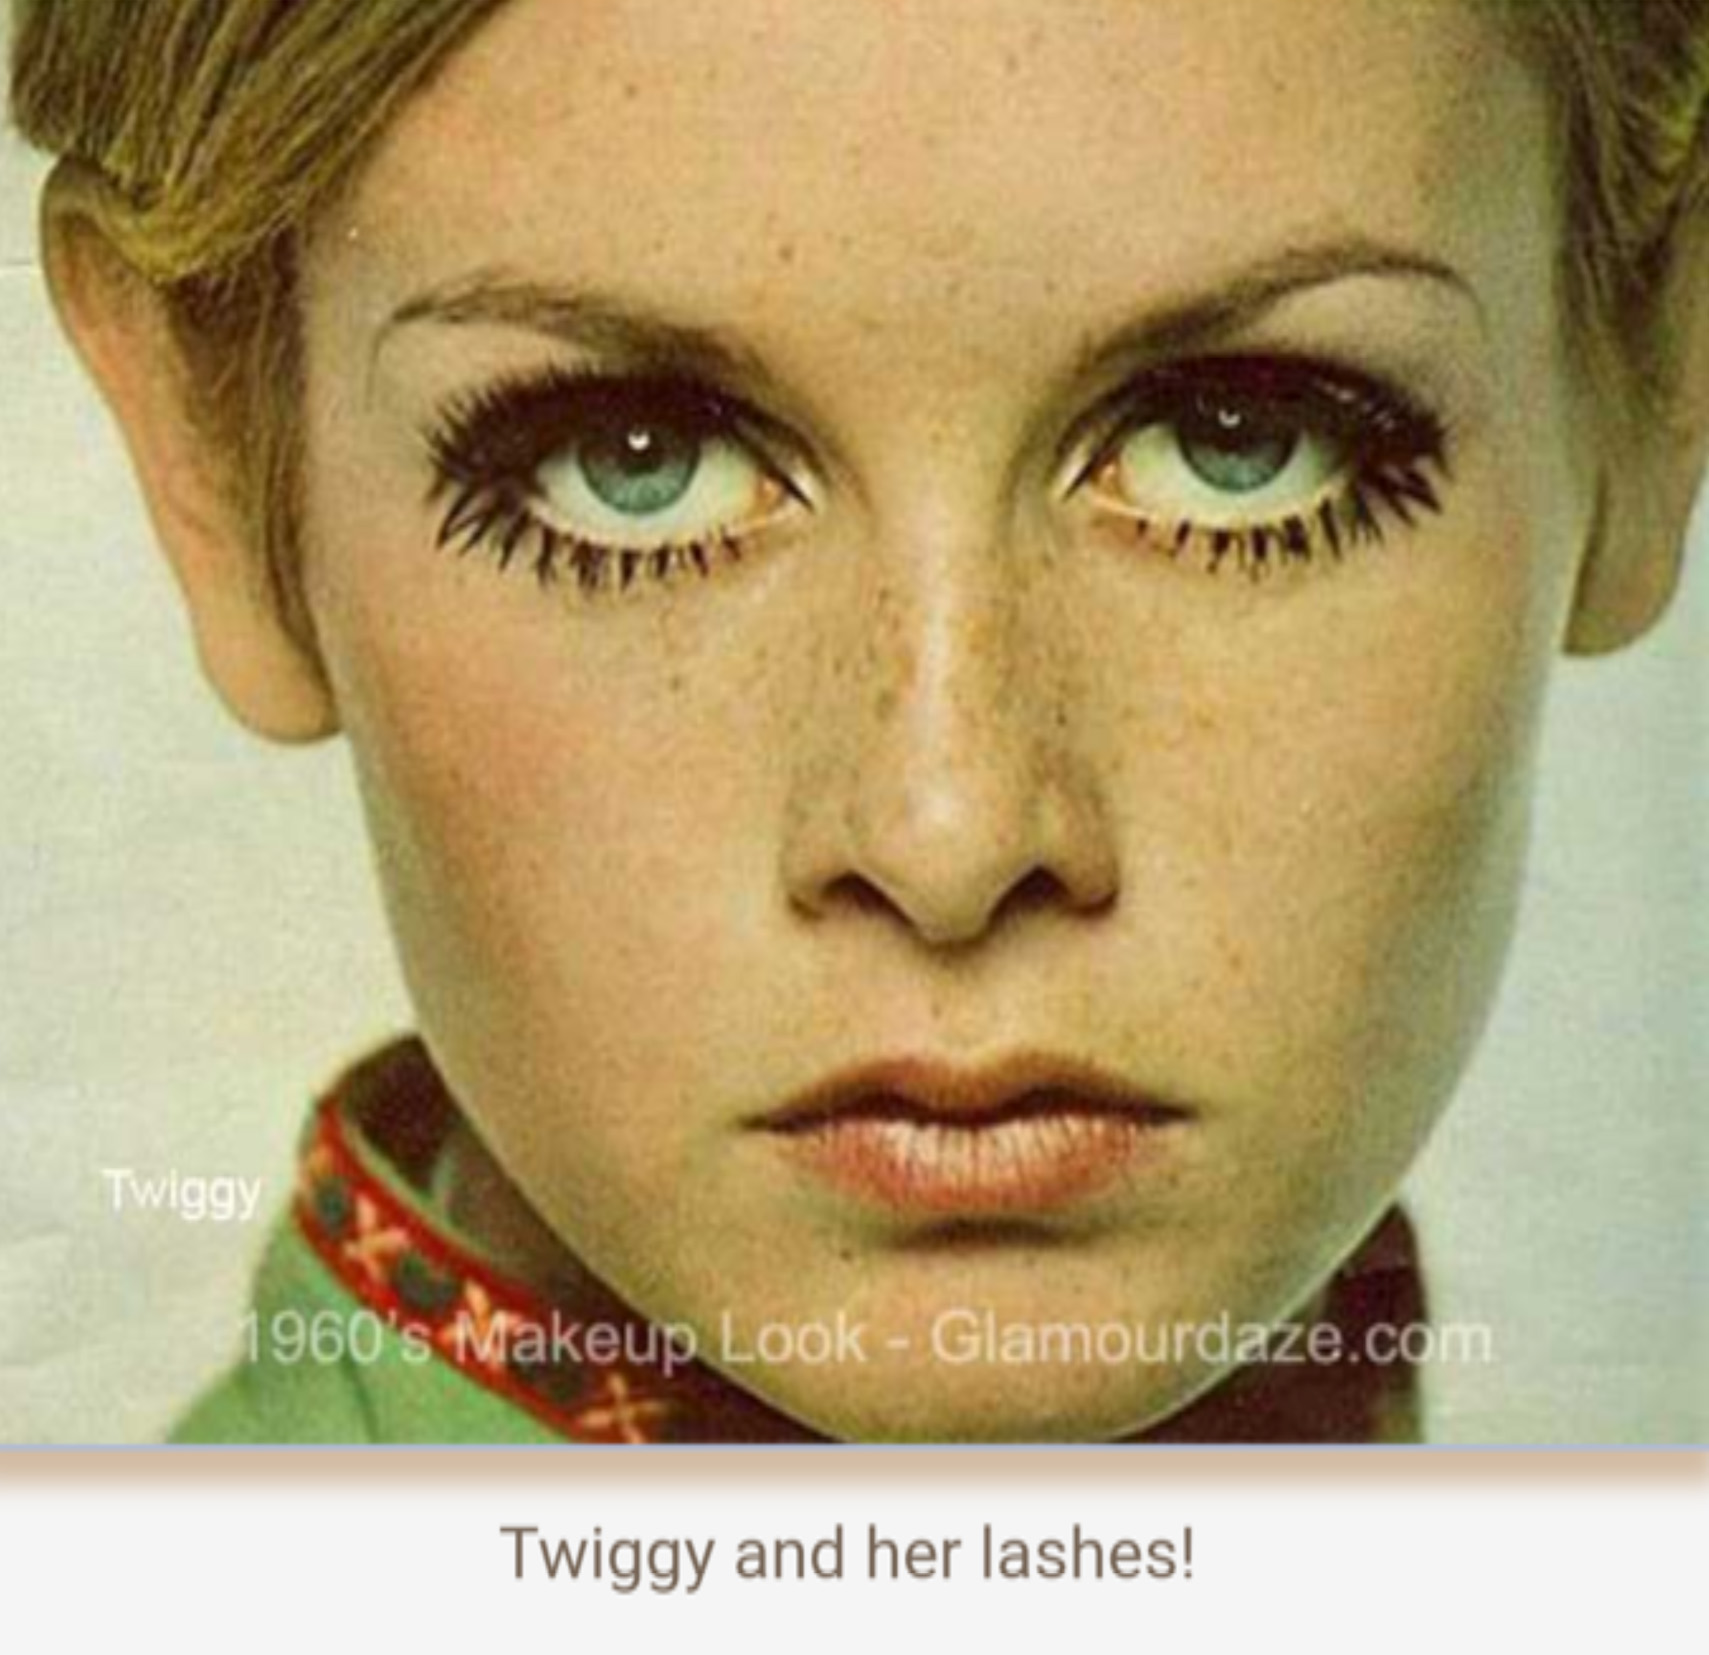 The makeup looks of 1960's